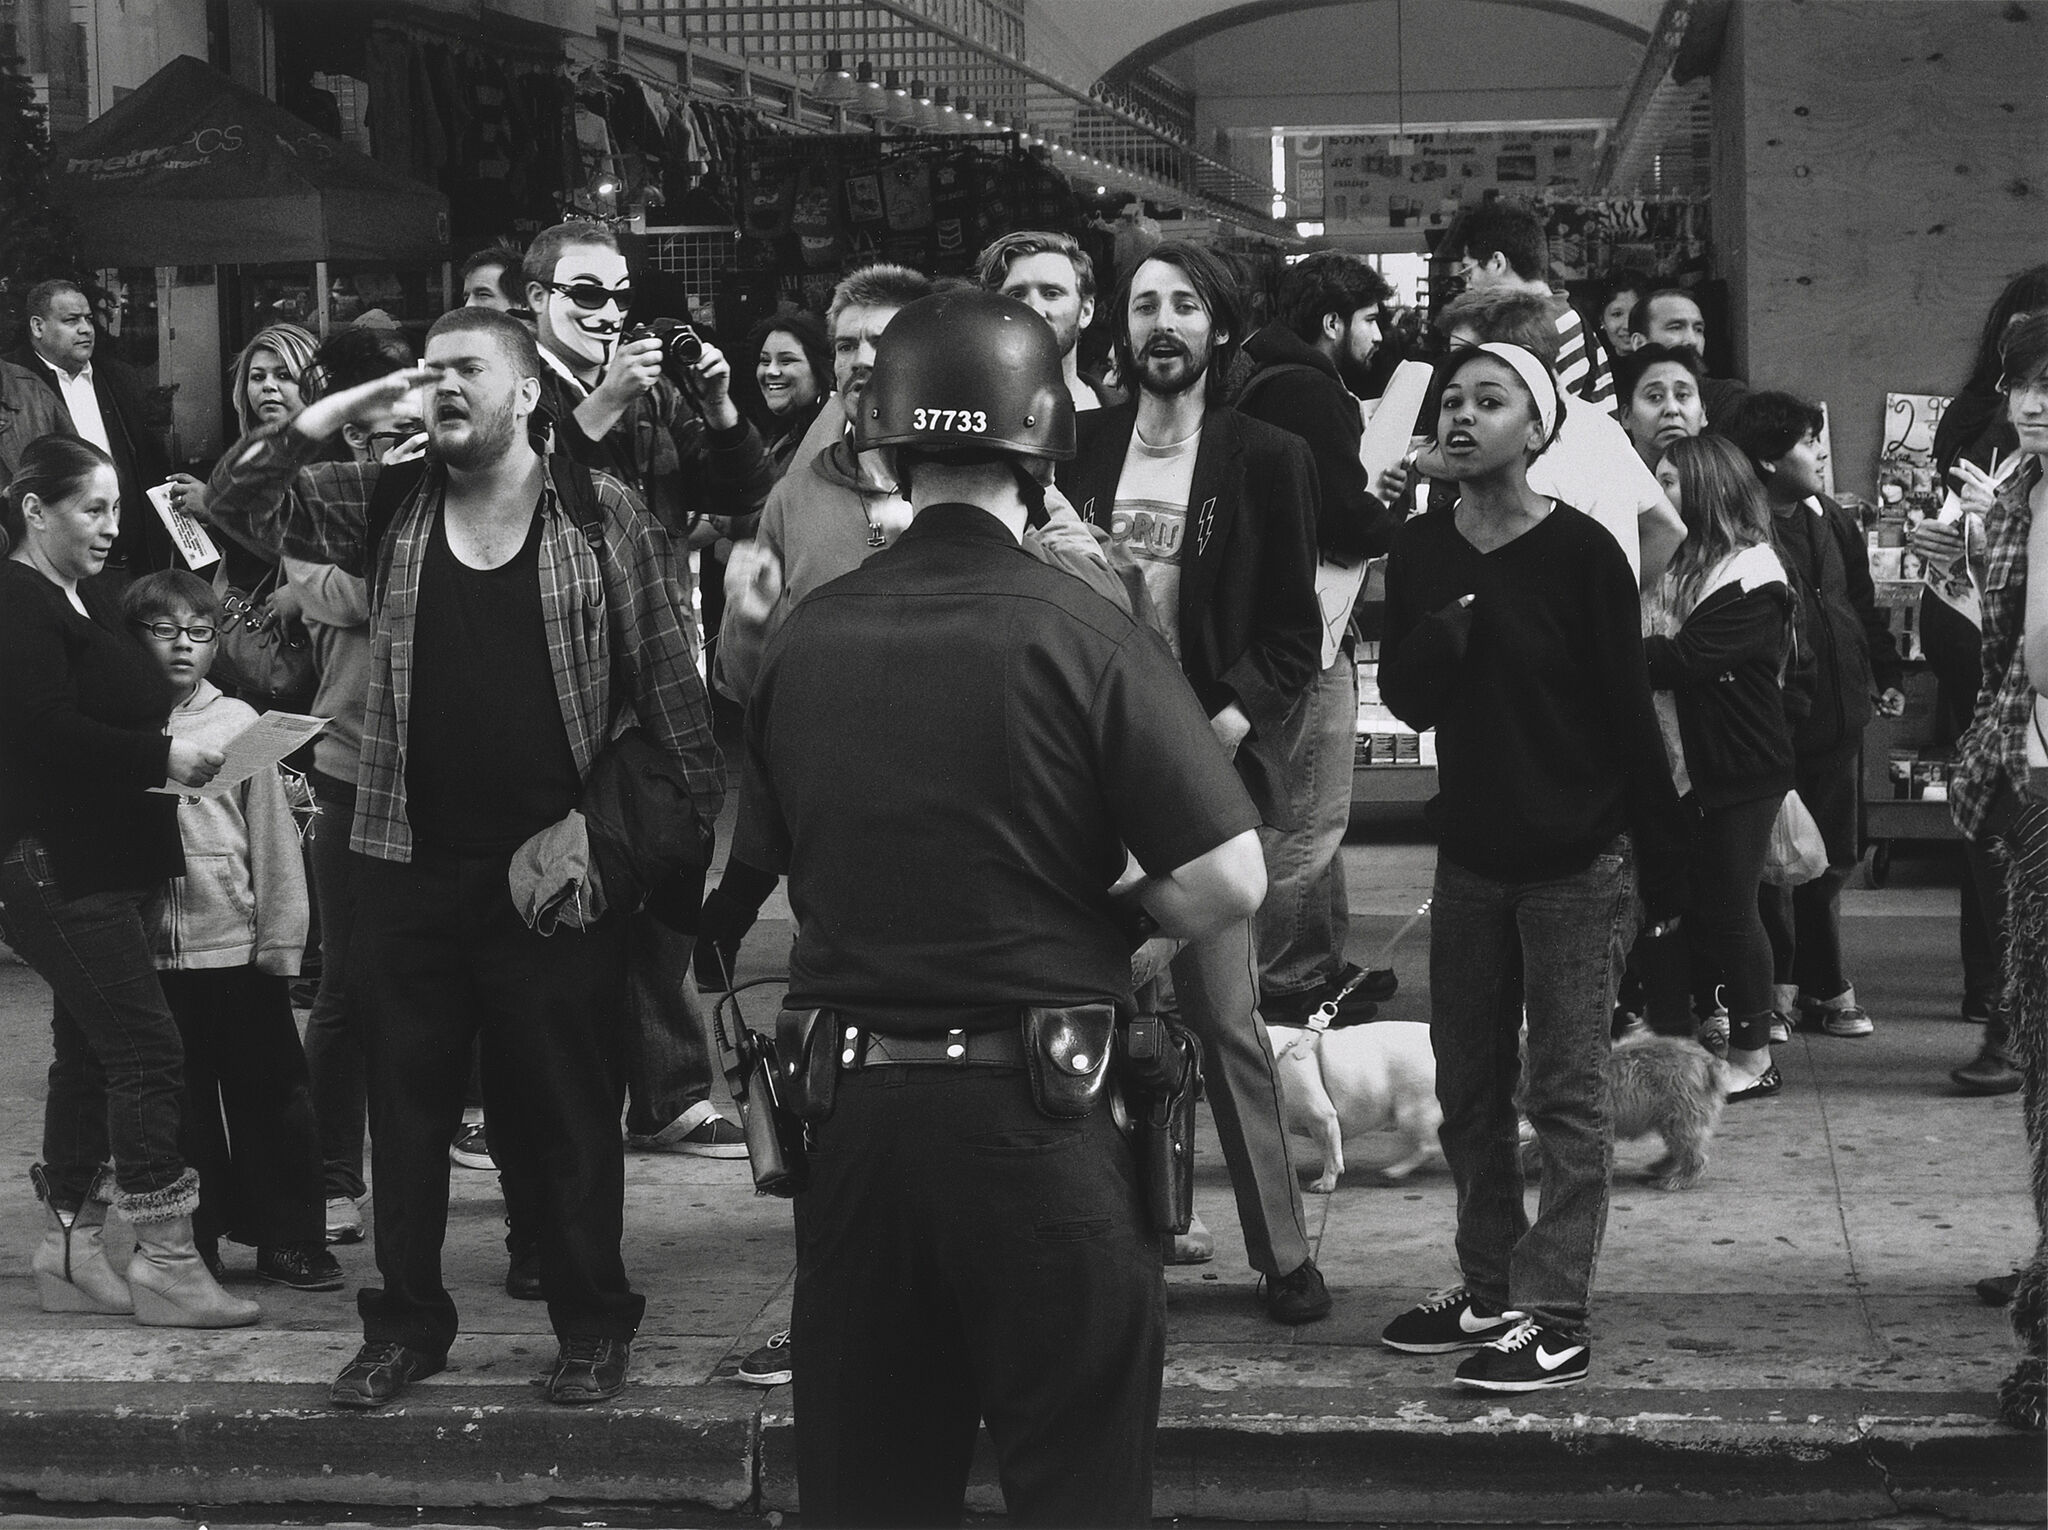 A cop with his back to the camera faces a group of young protesters on the street.